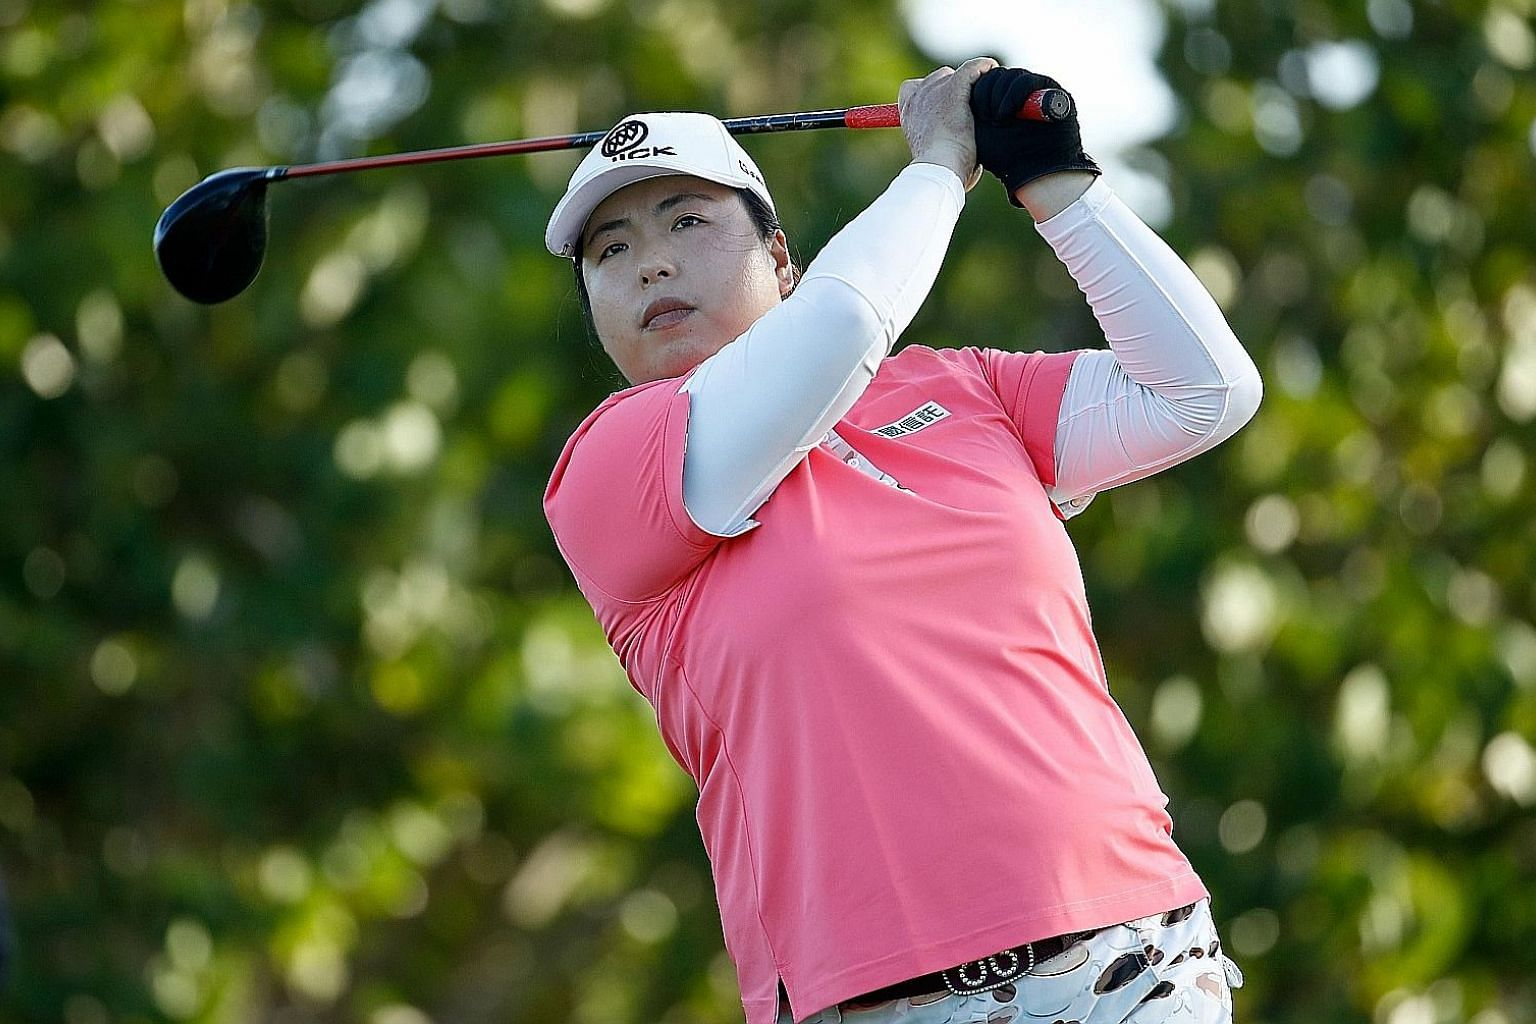 The first Chinese to become the top-ranked golfer in the world, Feng Shanshan will be in Singapore for the March 1-4 HSBC Women's World Championship, where her target is to shoot 15 under for the week.